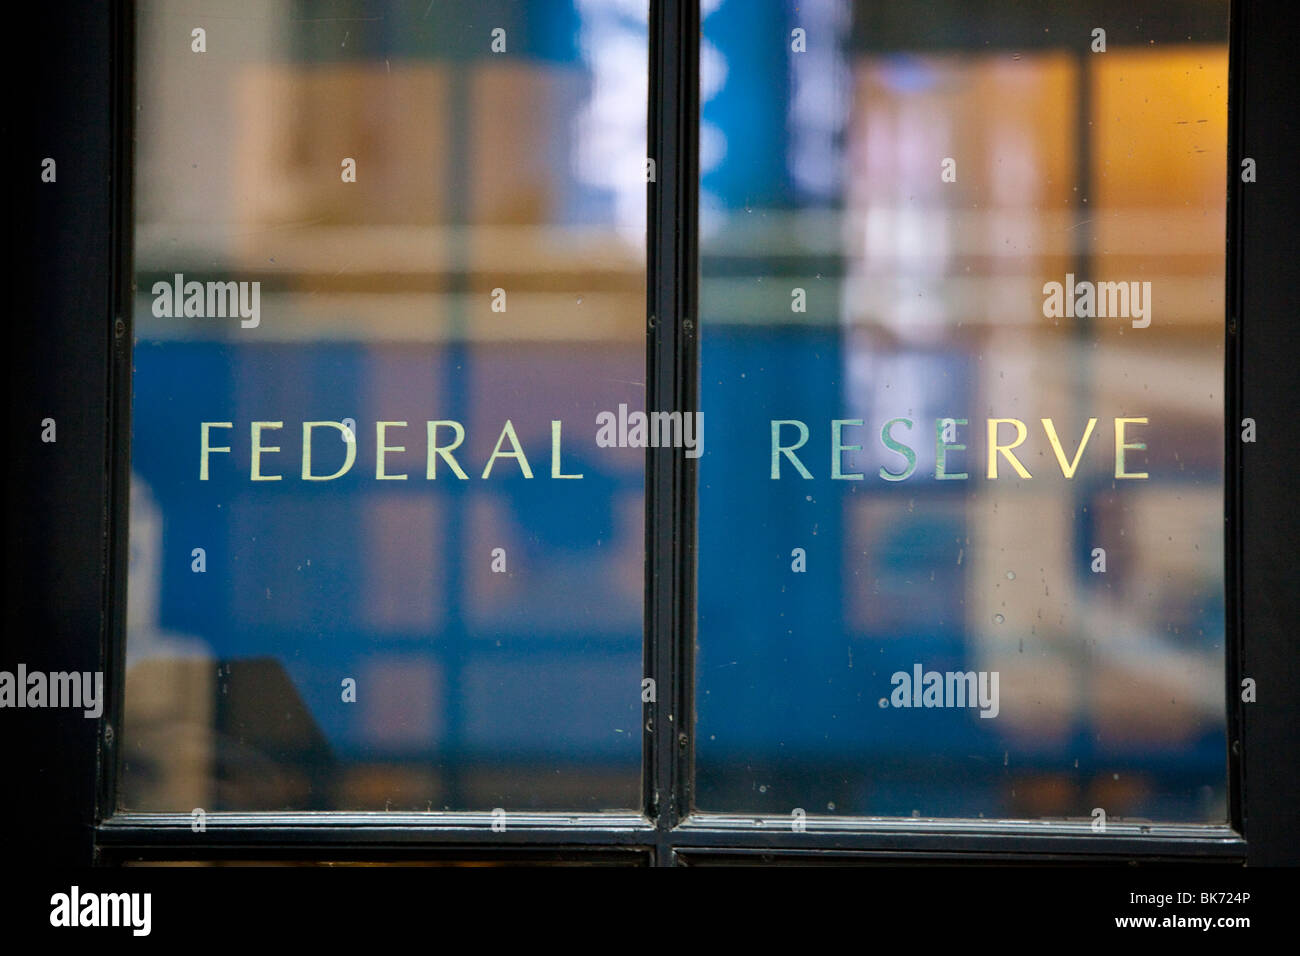 Federal Reserve Bank, Manhattan, New York City - Stock Image